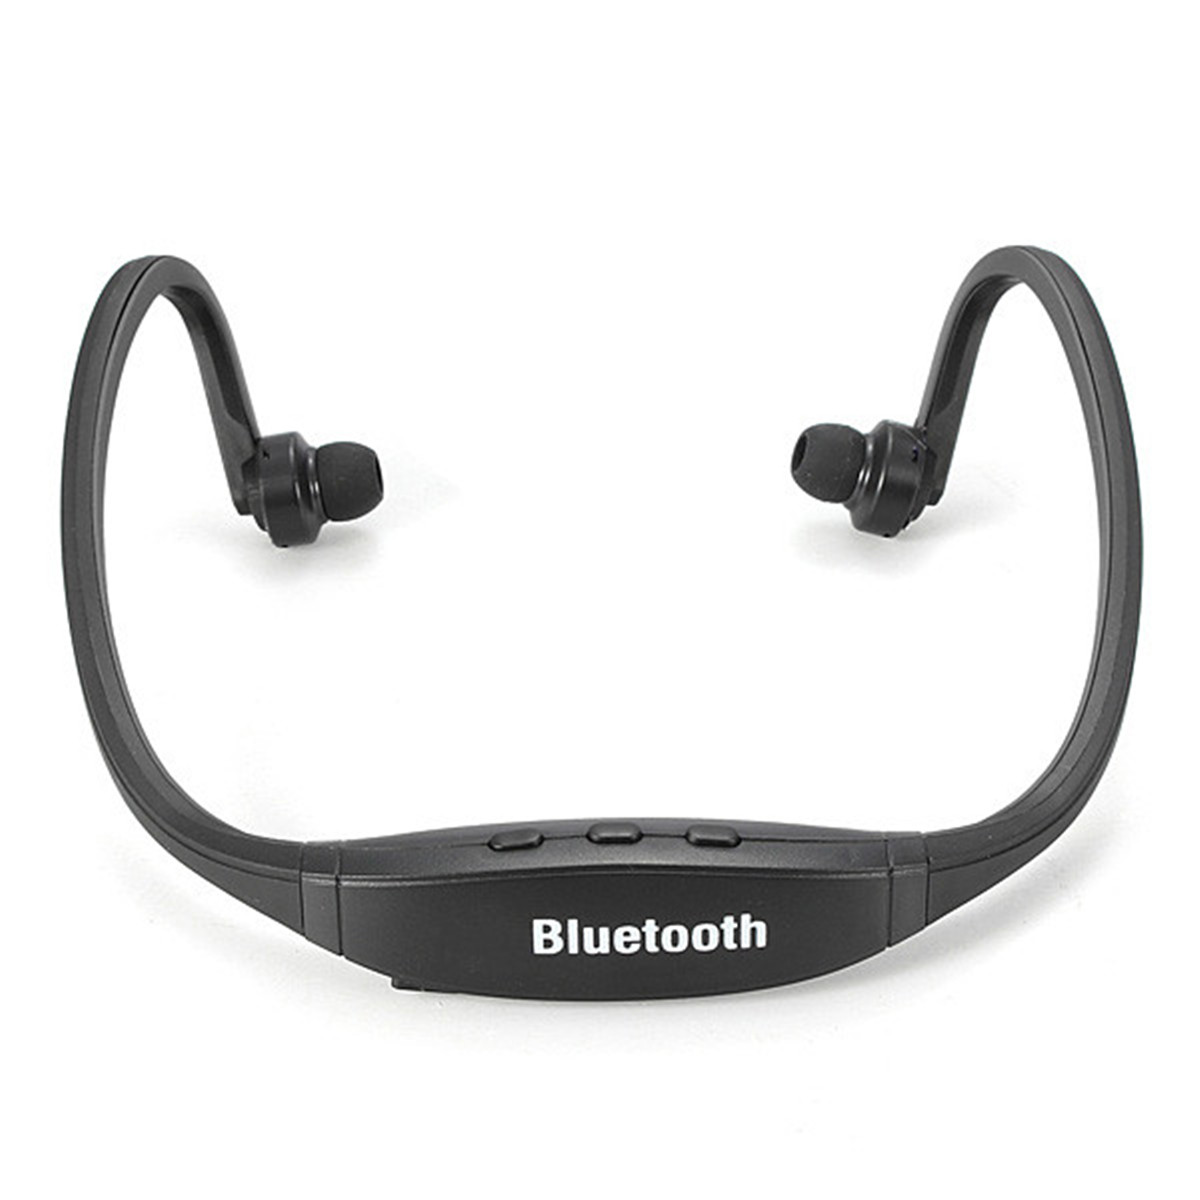 New Sport Bluetooth 4.0 Headset Wireless Earphone In-Ear Neckband Headphones For Running Smartphone For Samsung Mobile Phone finefun new bee bluetooth headphones bluetooth headset wireless headphones earphone for ios android phone smartphone table pc